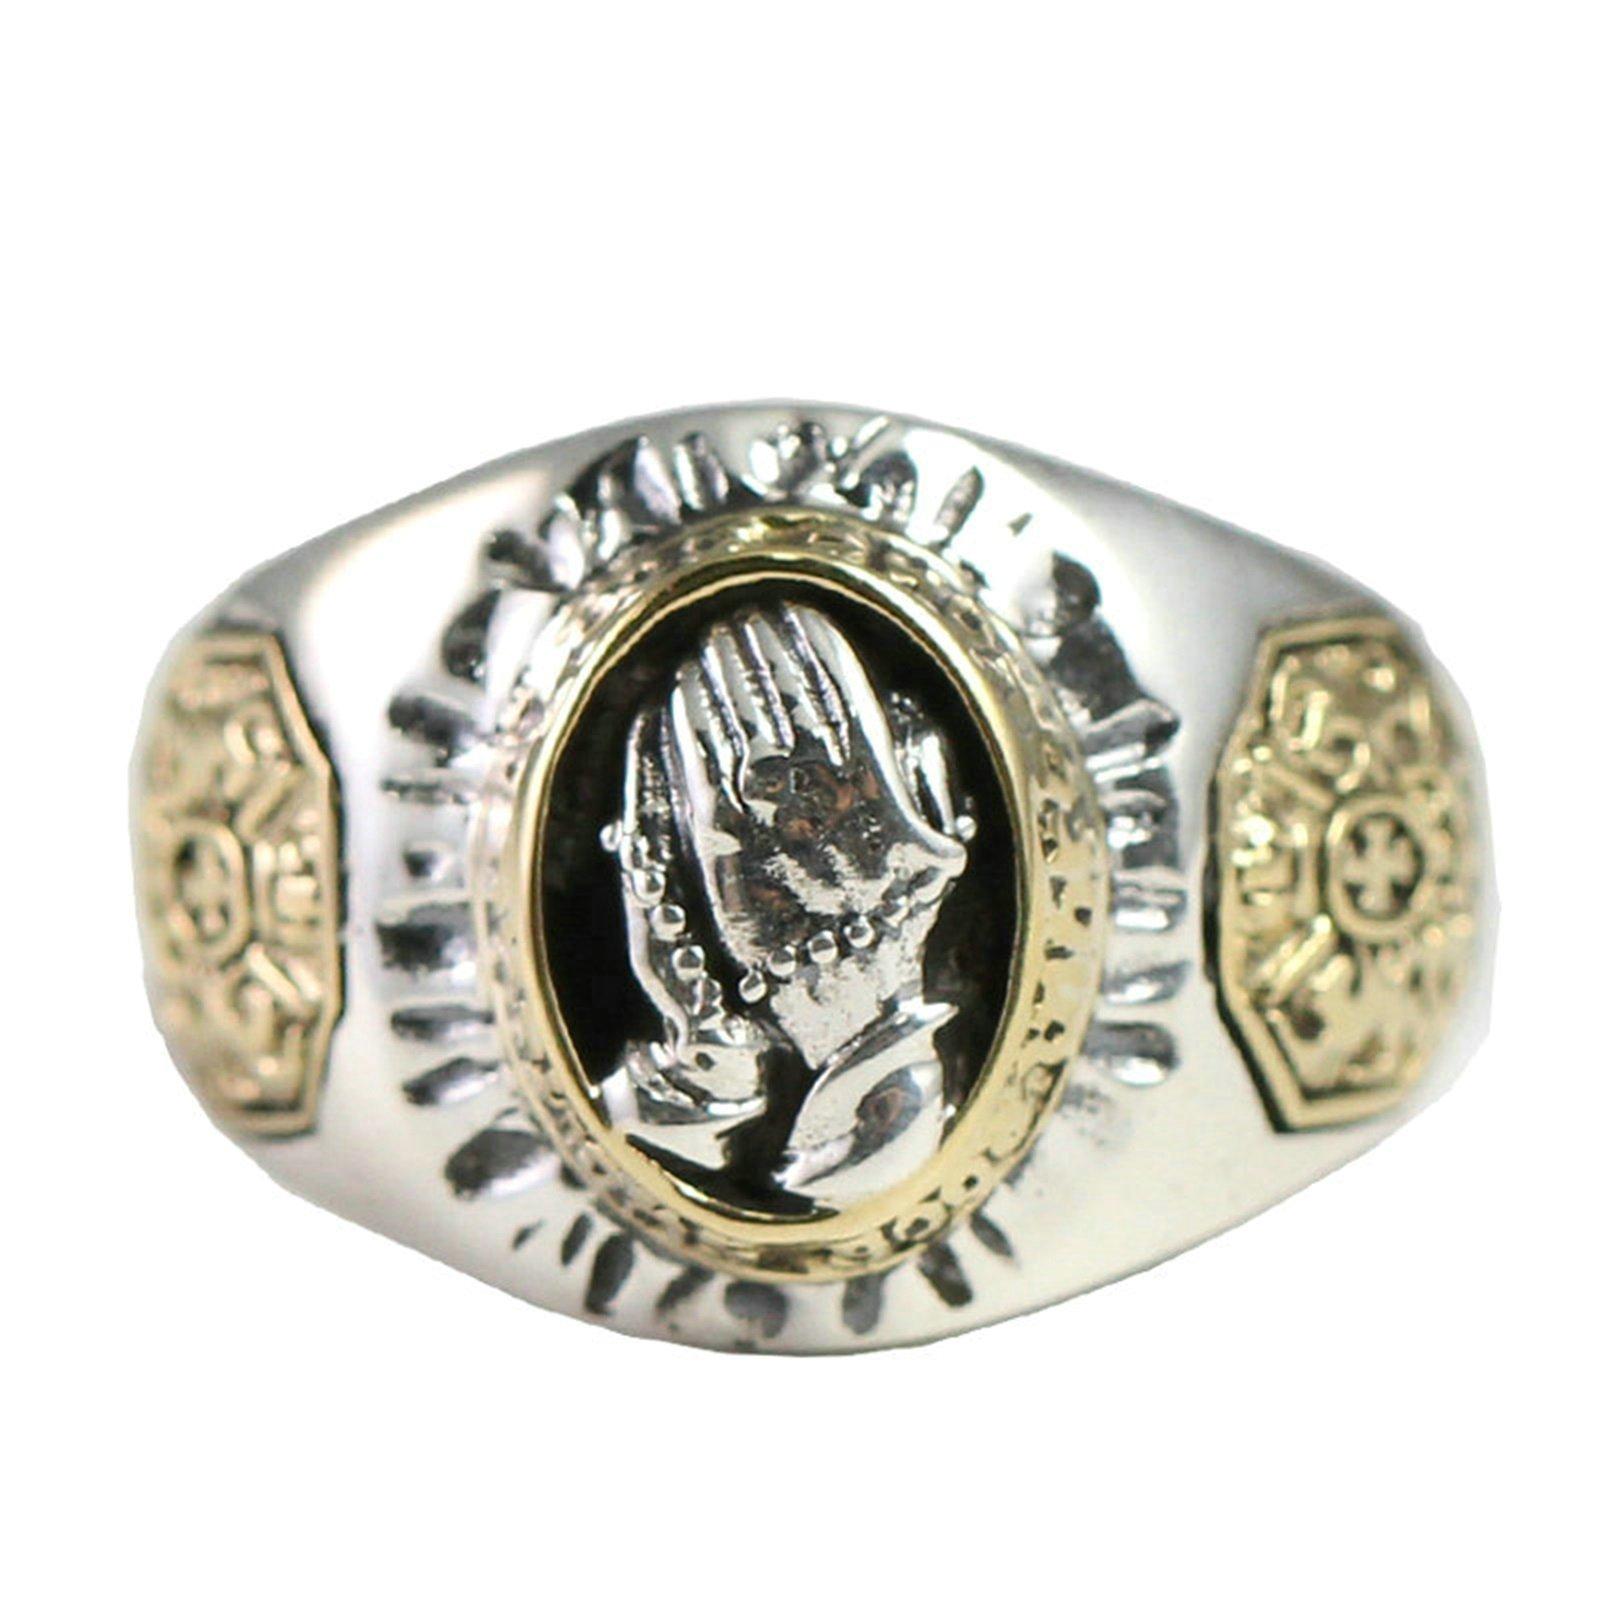 Adisaer Biker Rings Silver Ring for Men Prayer Hands Ring Size 5 Vintage Punk Jewelry